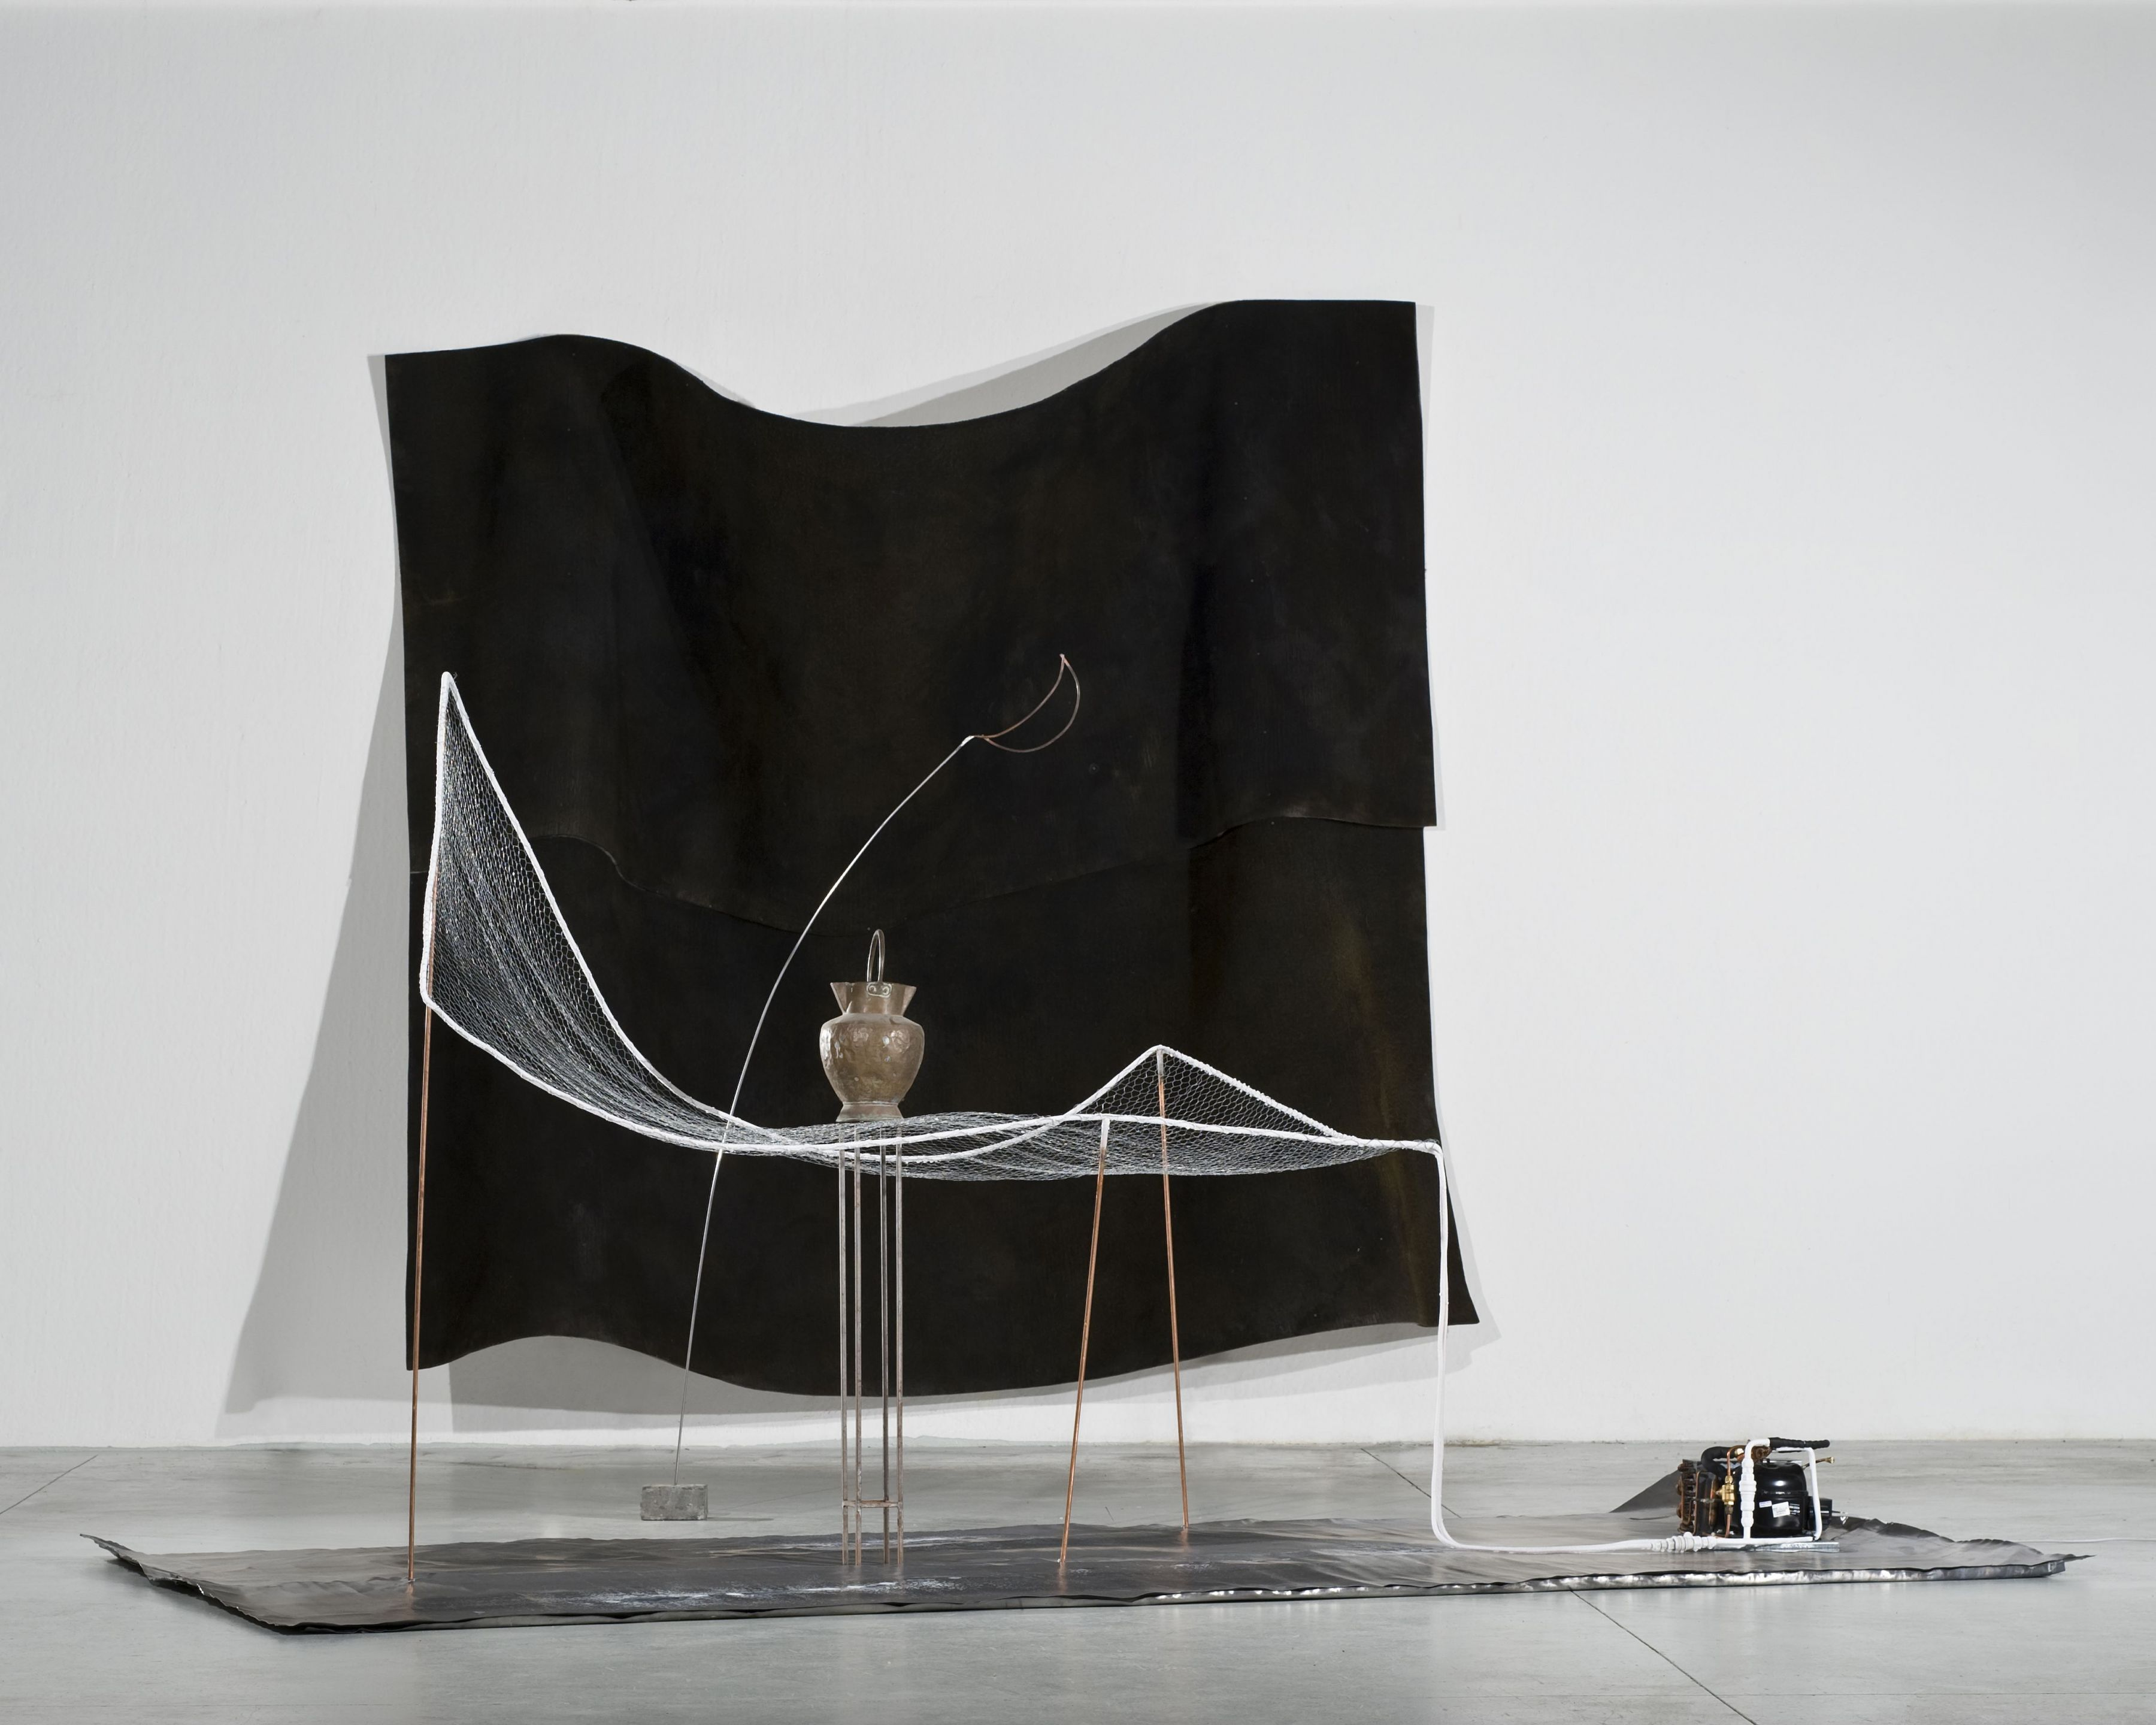 a sculptural installation by Pier Paolo Calzolari available to buy